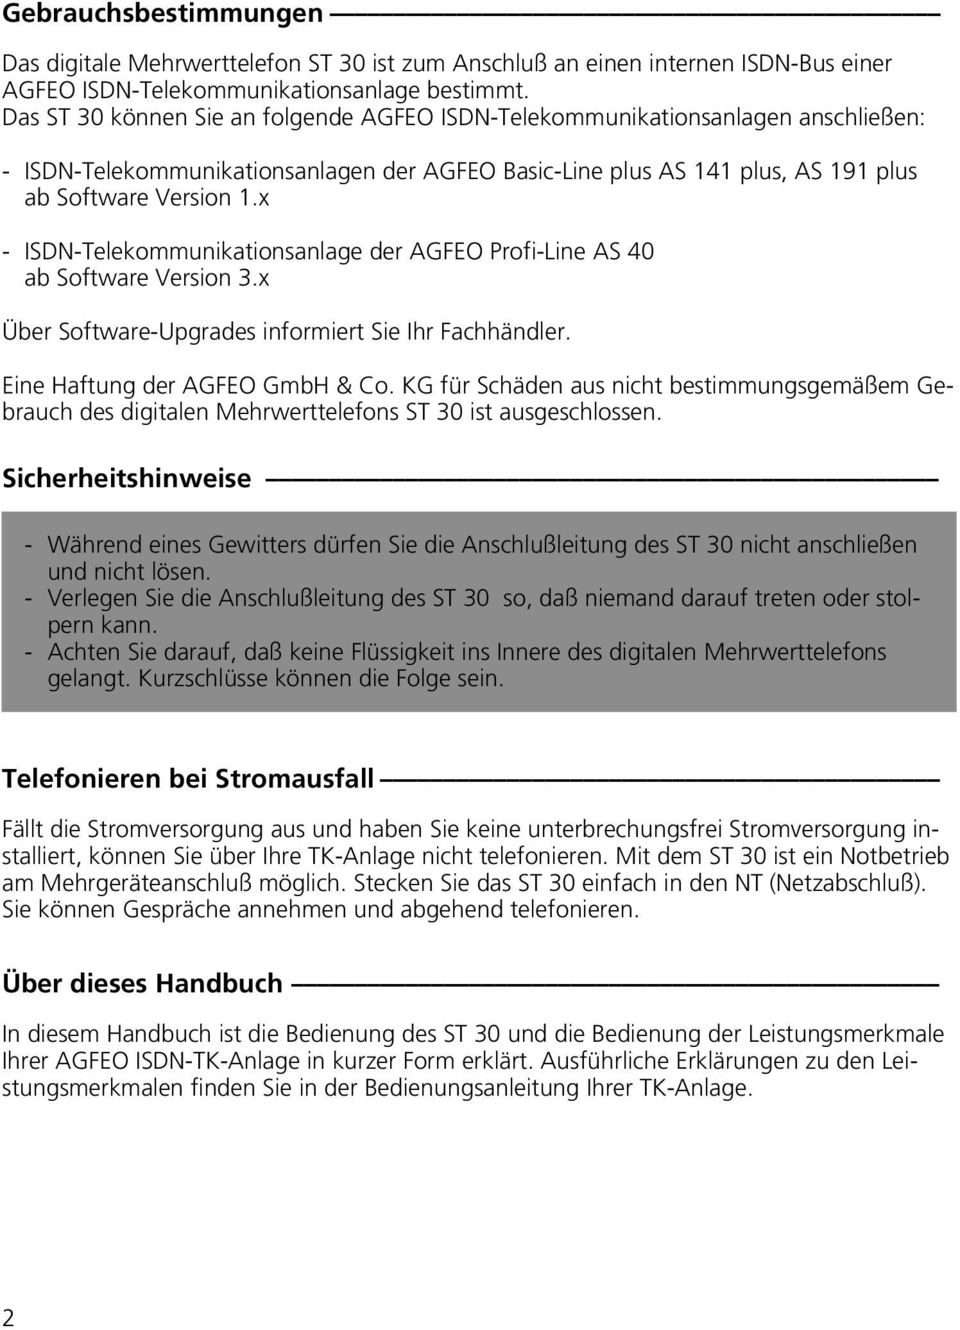 x - ISDN-Telekommunikationsanlage der AGFEO Profi-Line AS 40 ab Software Version 3.x Über Software-Upgrades informiert Sie Ihr Fachhändler. Eine Haftung der AGFEO GmbH & Co.